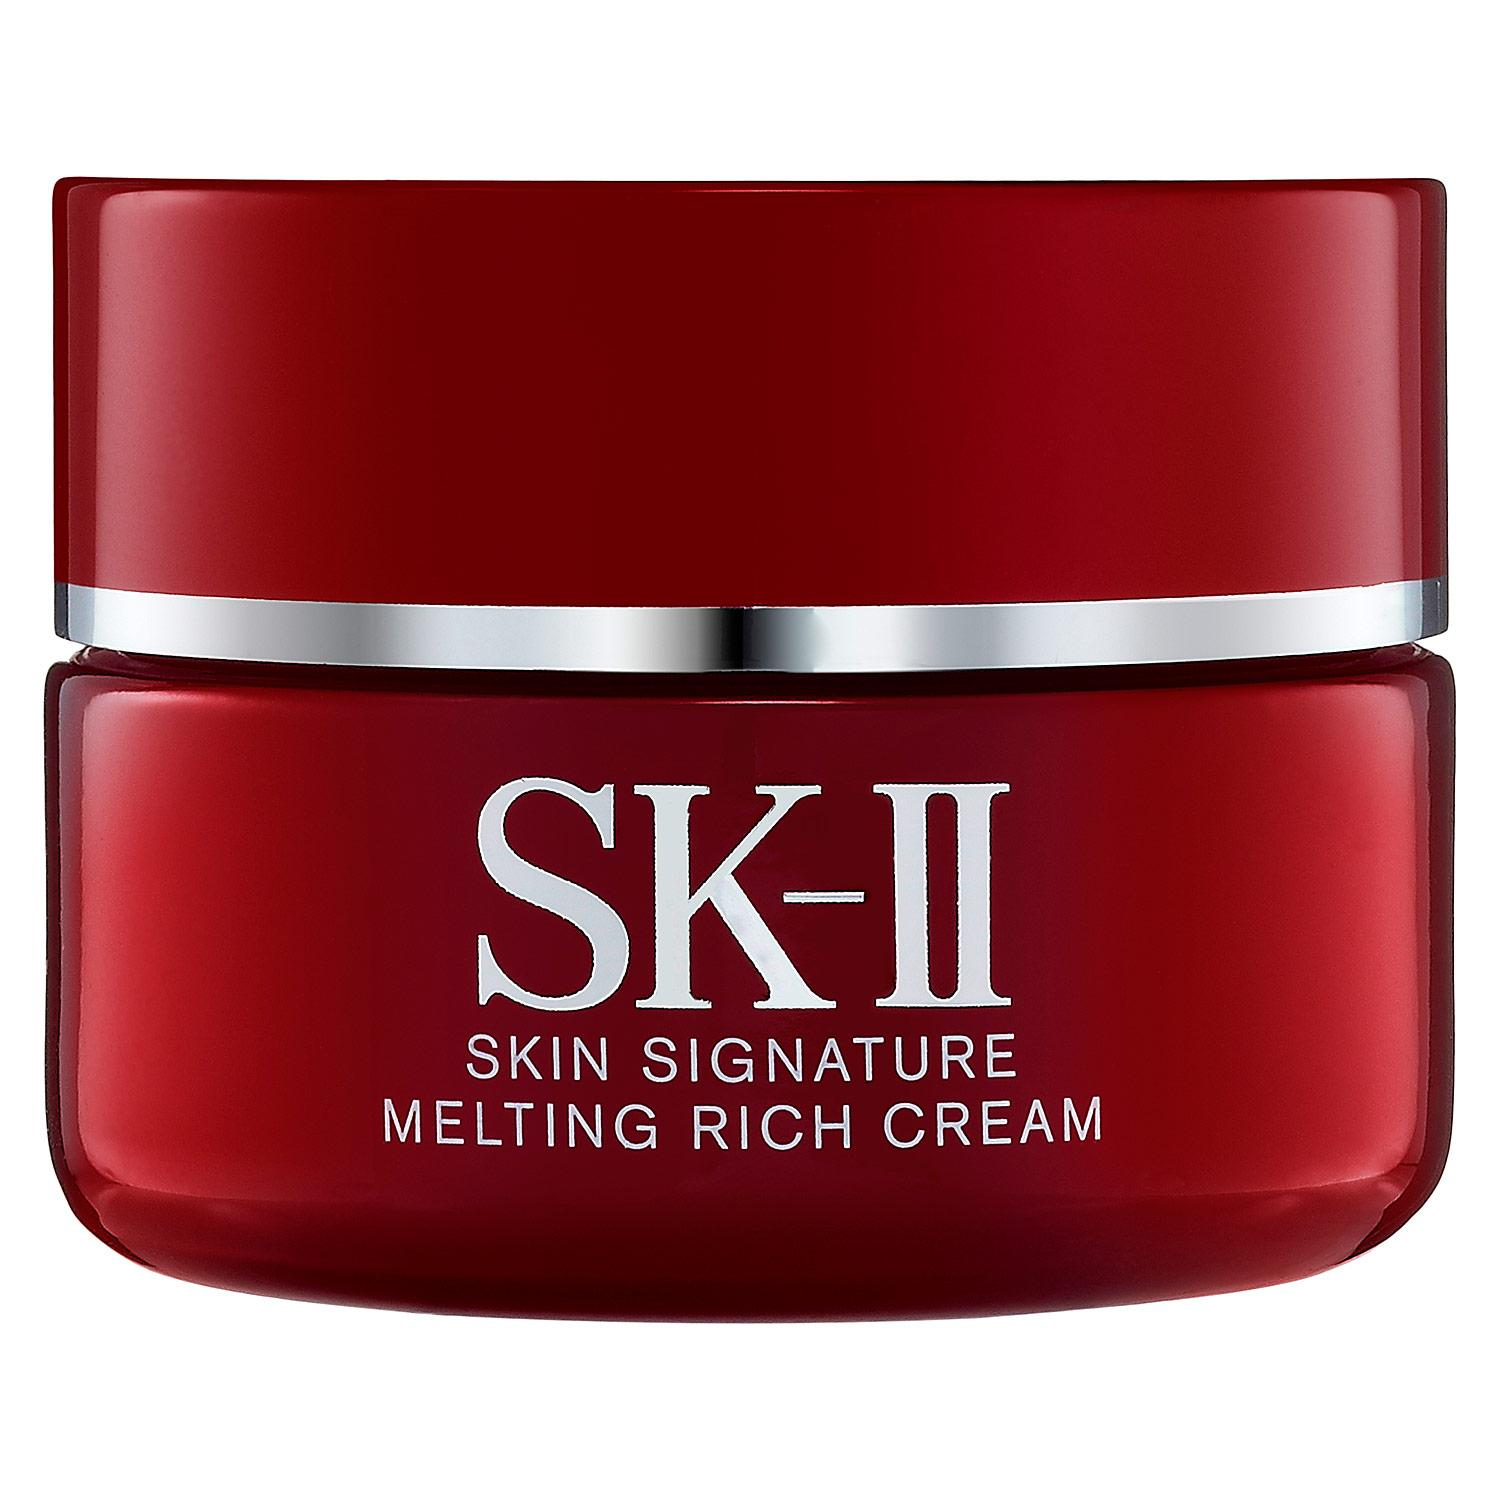 Skin Signature Melting Rich Cream